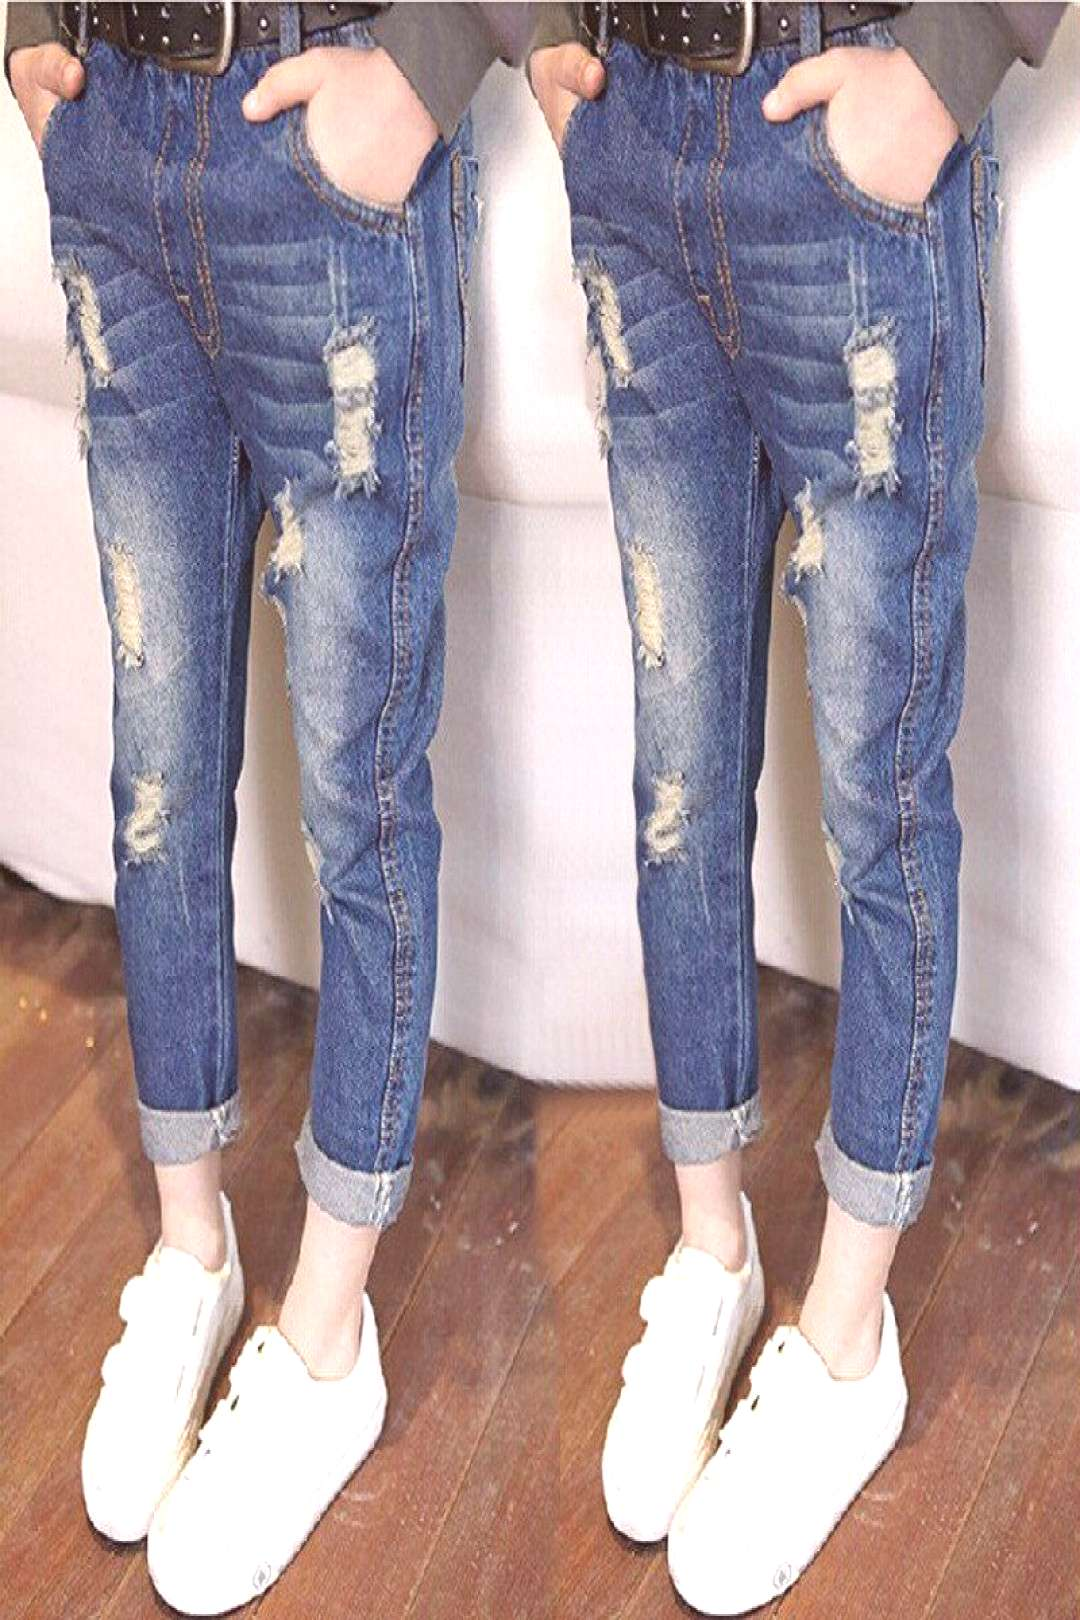 KW Brand 3-8T Girl Jeans Spring 2017 Hole jeans for girls kids ripped jeans fashion girls clothing